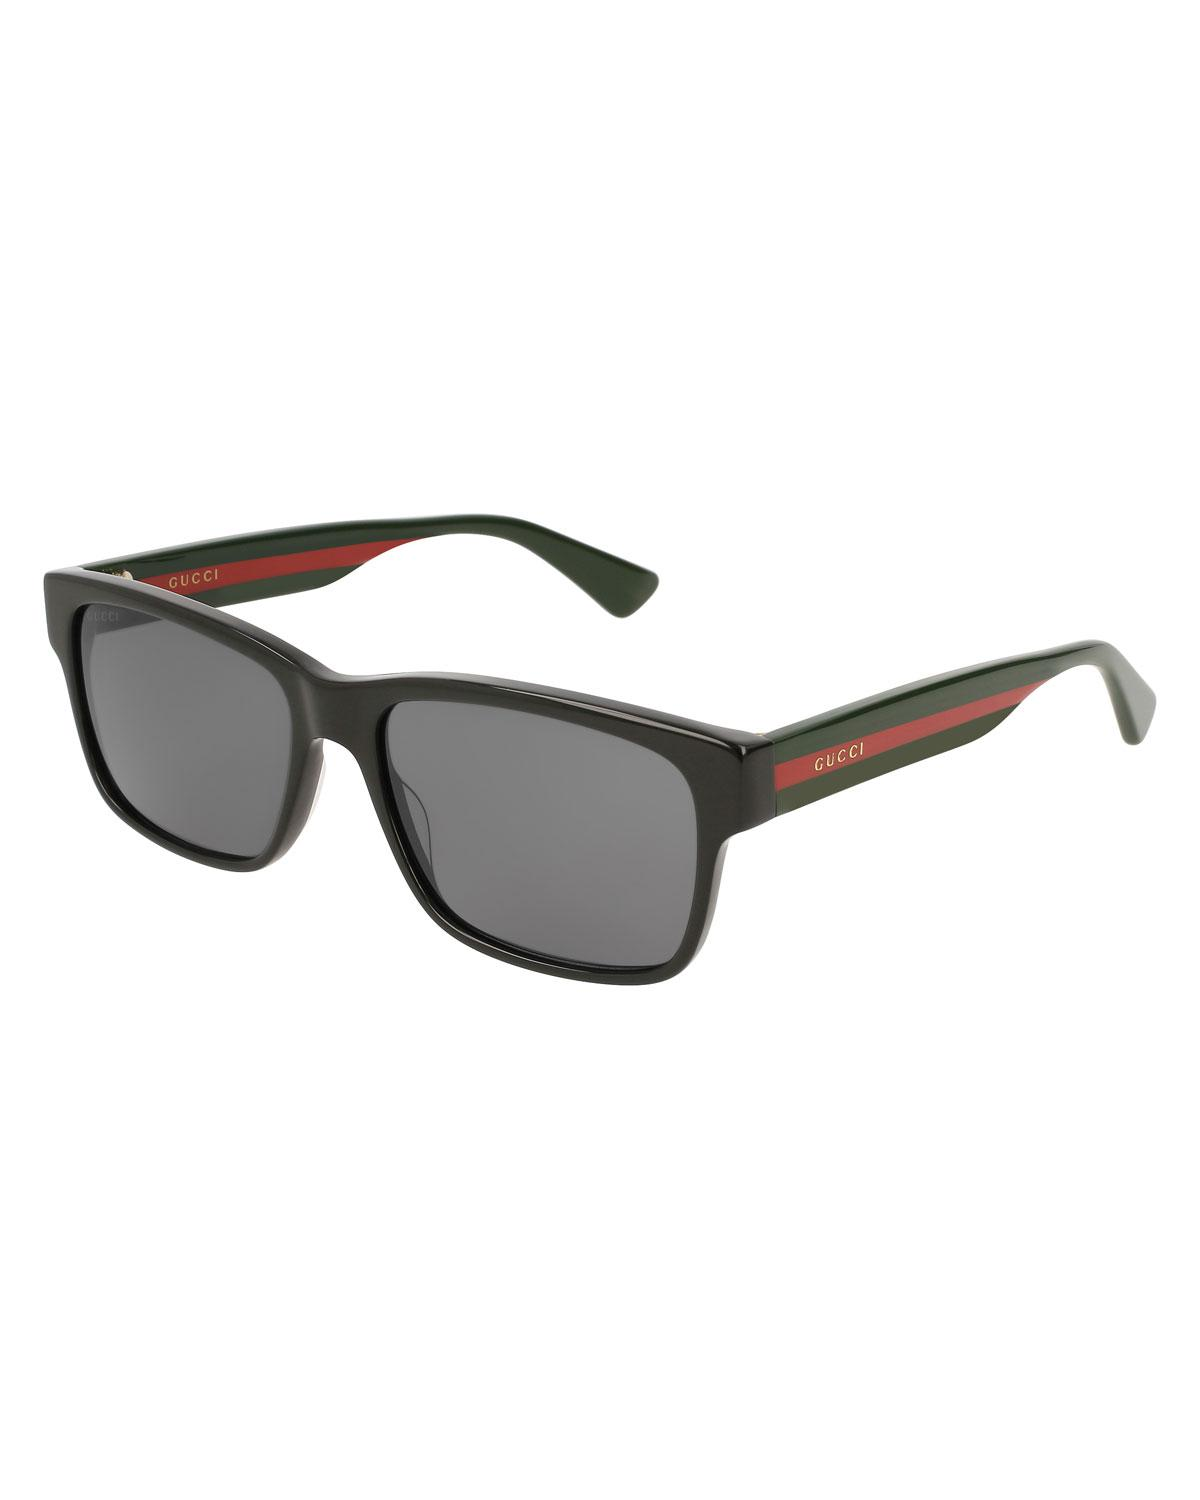 3b93a6111c4 Gucci - Black Square Acetate Sunglasses With Signature Web for Men - Lyst.  View fullscreen